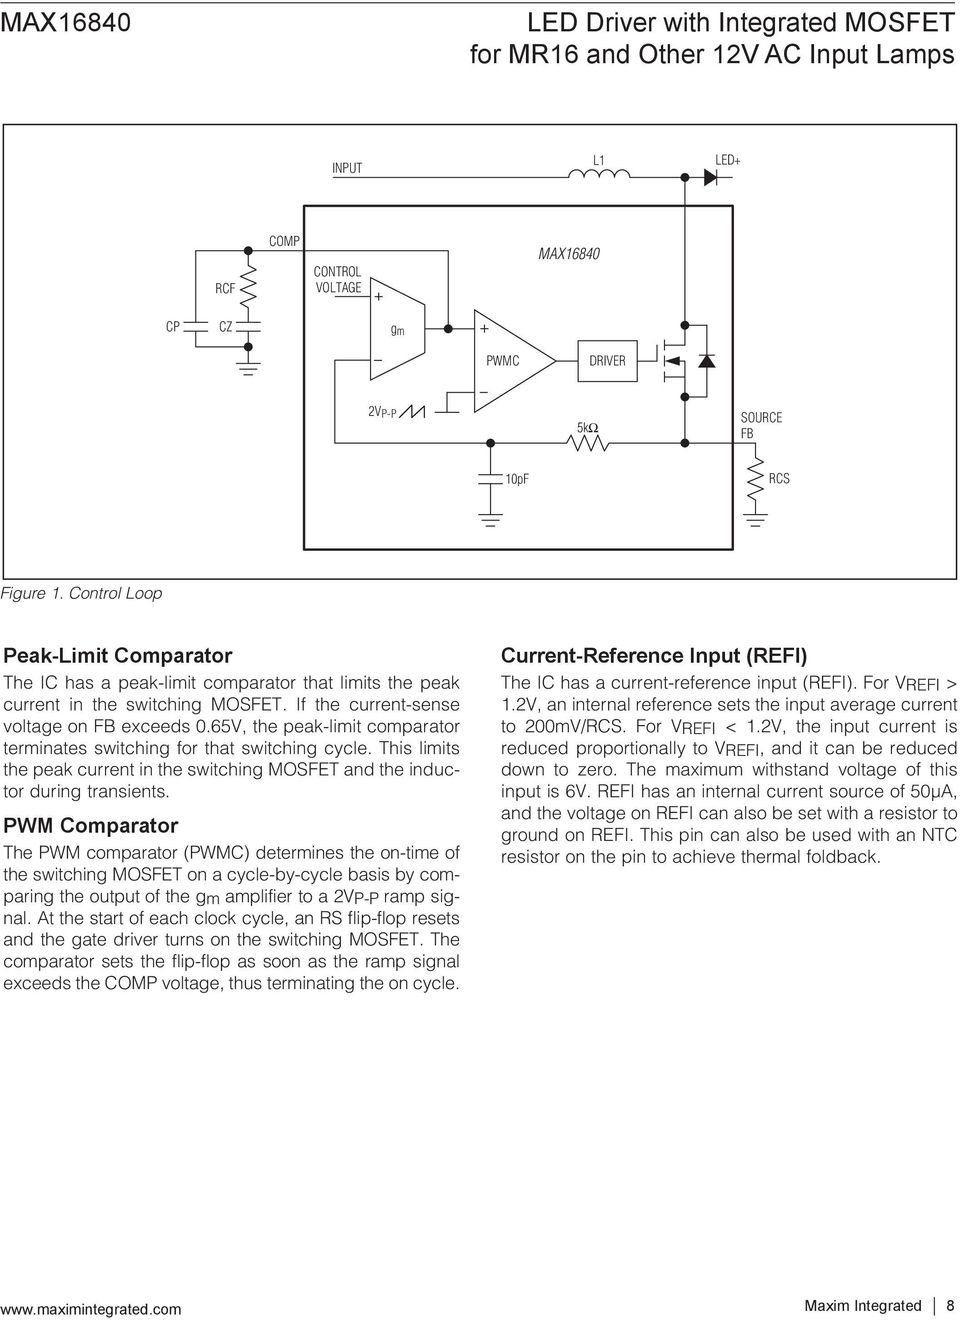 Led Driver With Integrated Mosfet For Mr16 And Other 12v Ac Input Lights Using Analog Flipflop Circuit Diagram 65v The Peak Limit Comparator Terminates Switching That Cycle This Limits